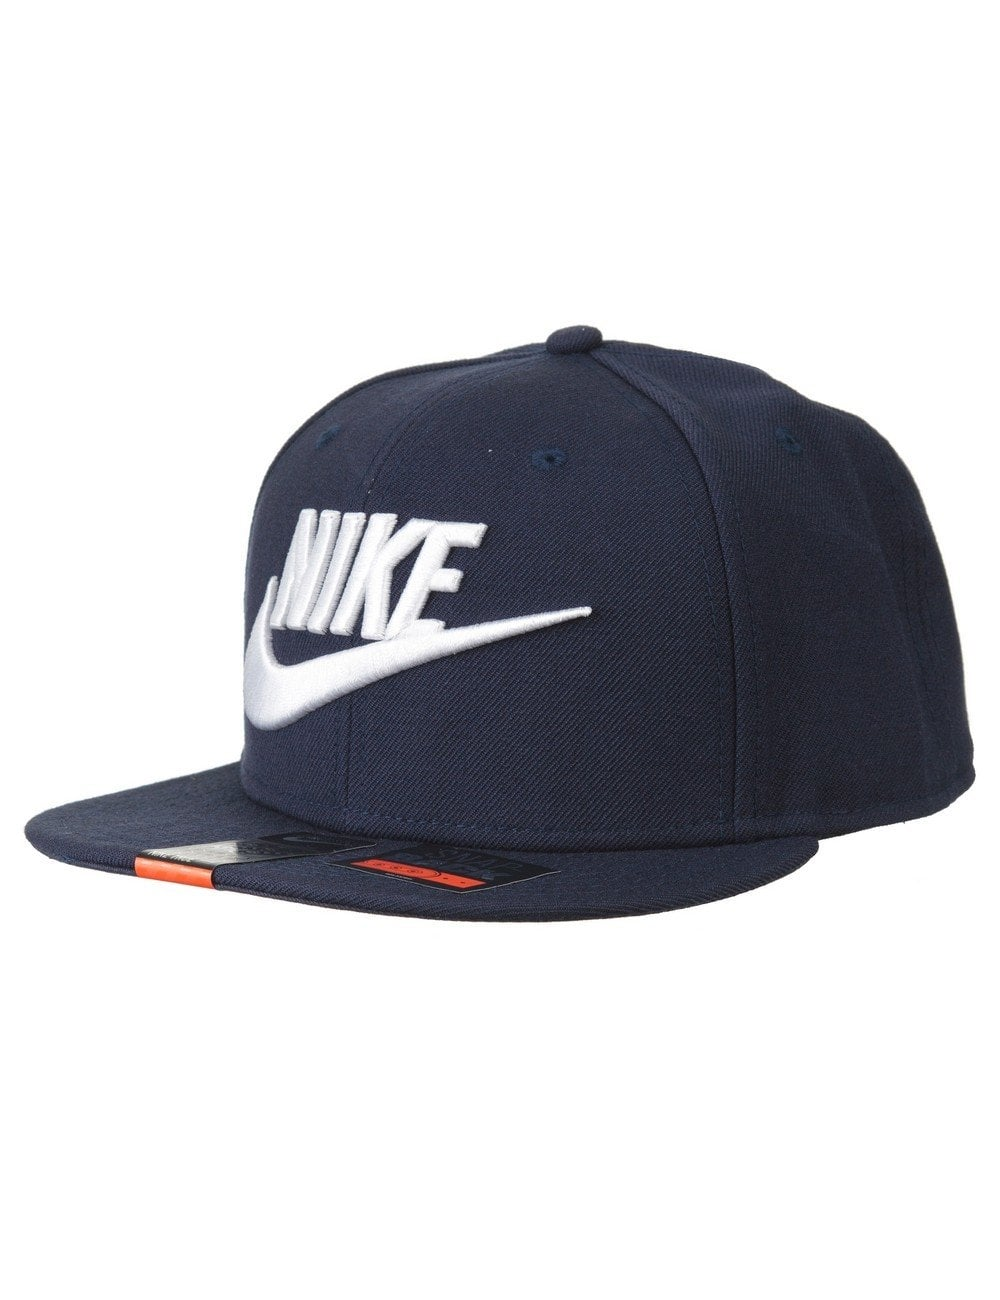 145c87aff77c4b Nike Futura True 2 Snapback Hat - Obsidian - Accessories from Fat ...